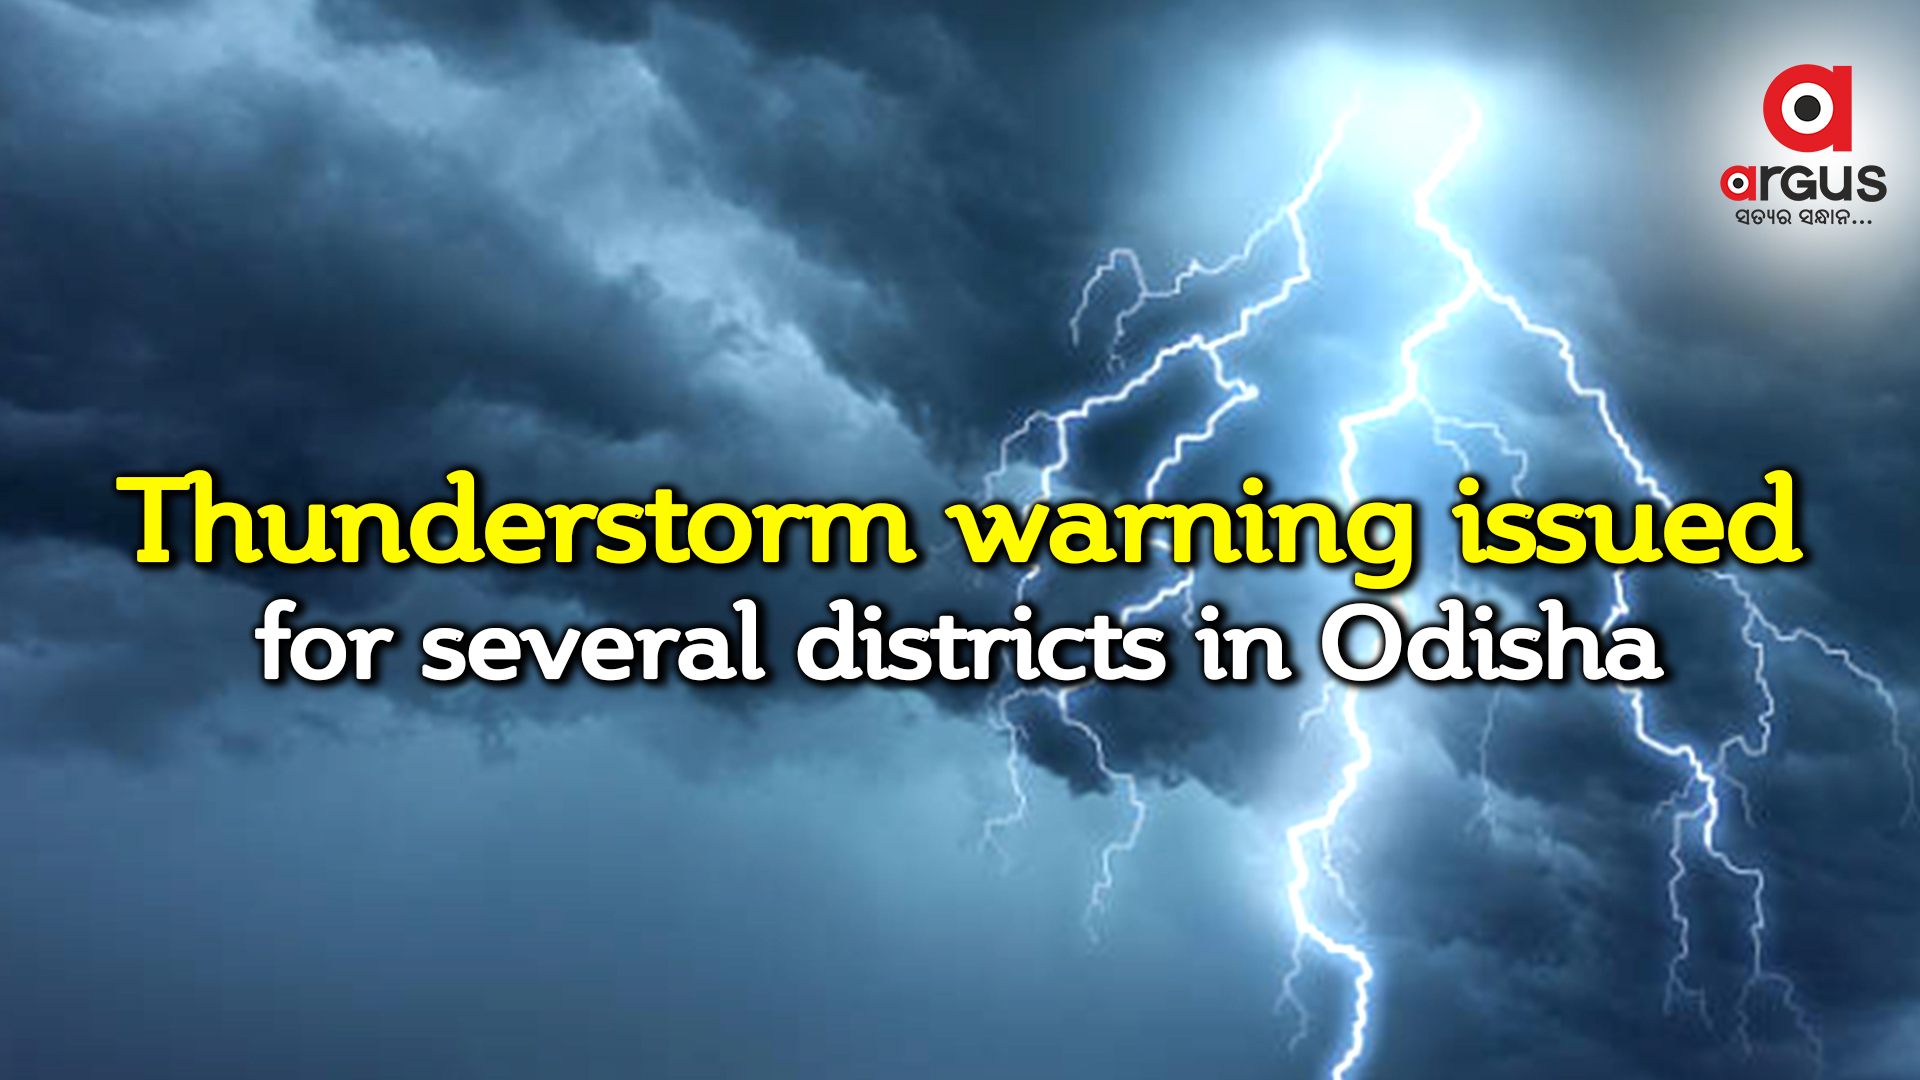 Thunderstorm, lightning warning issued for several districts in Odisha